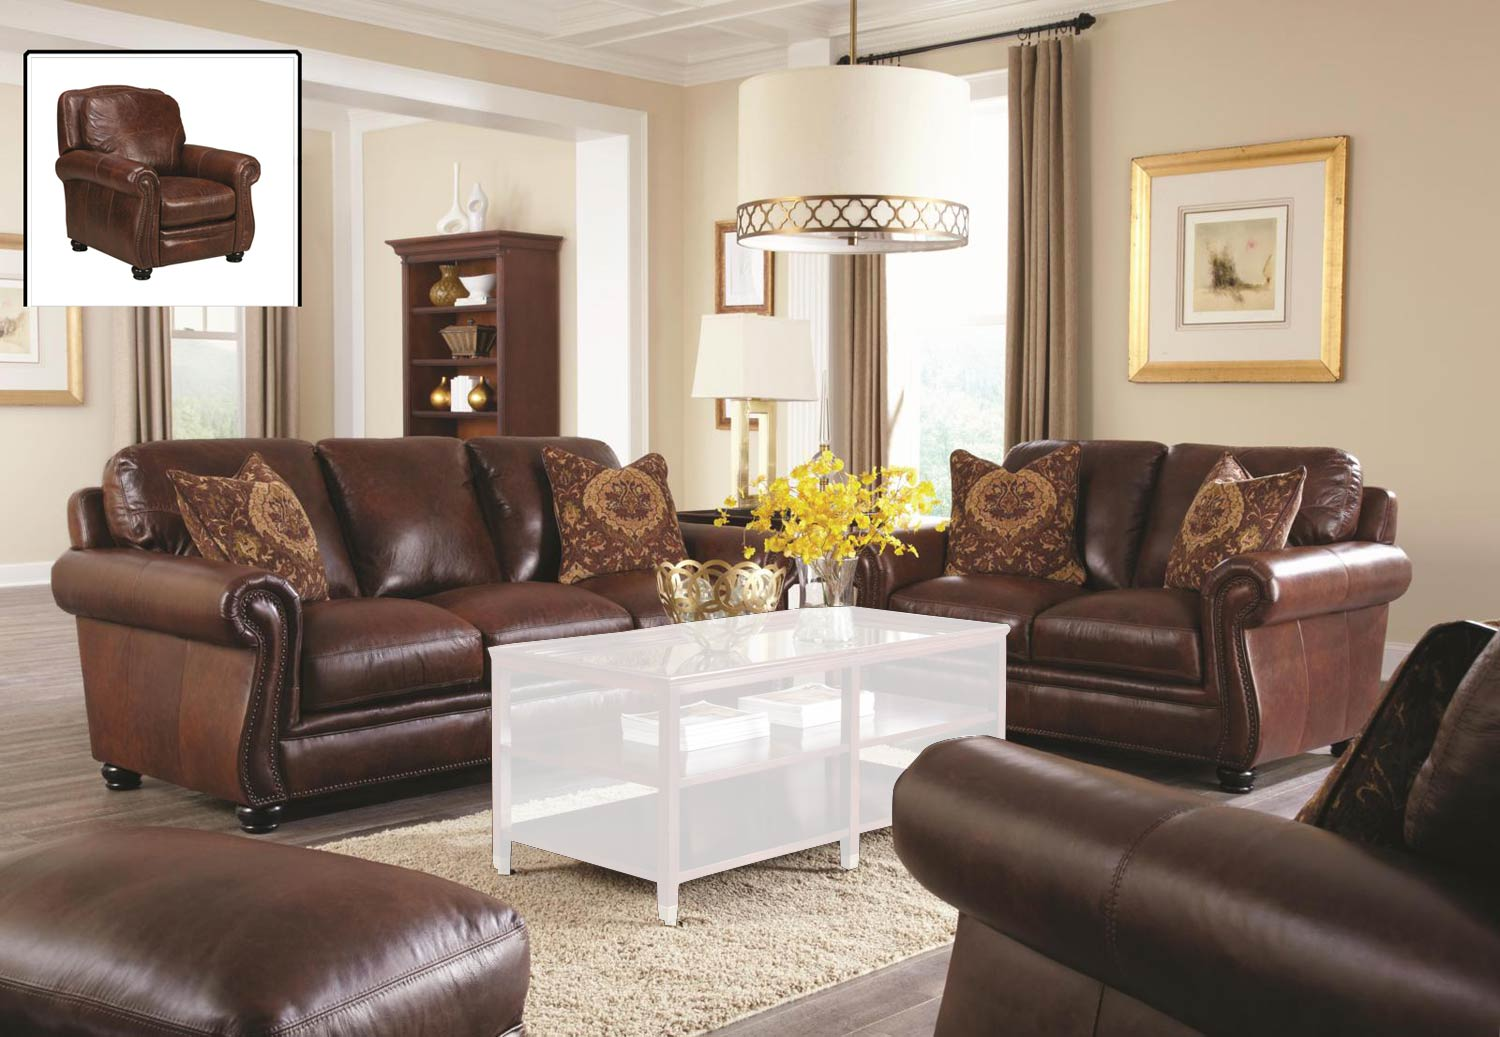 Chelsea Home Furniture San Angelo Sofa Set - Bolero Cohiba 62H044-Sofa-Set